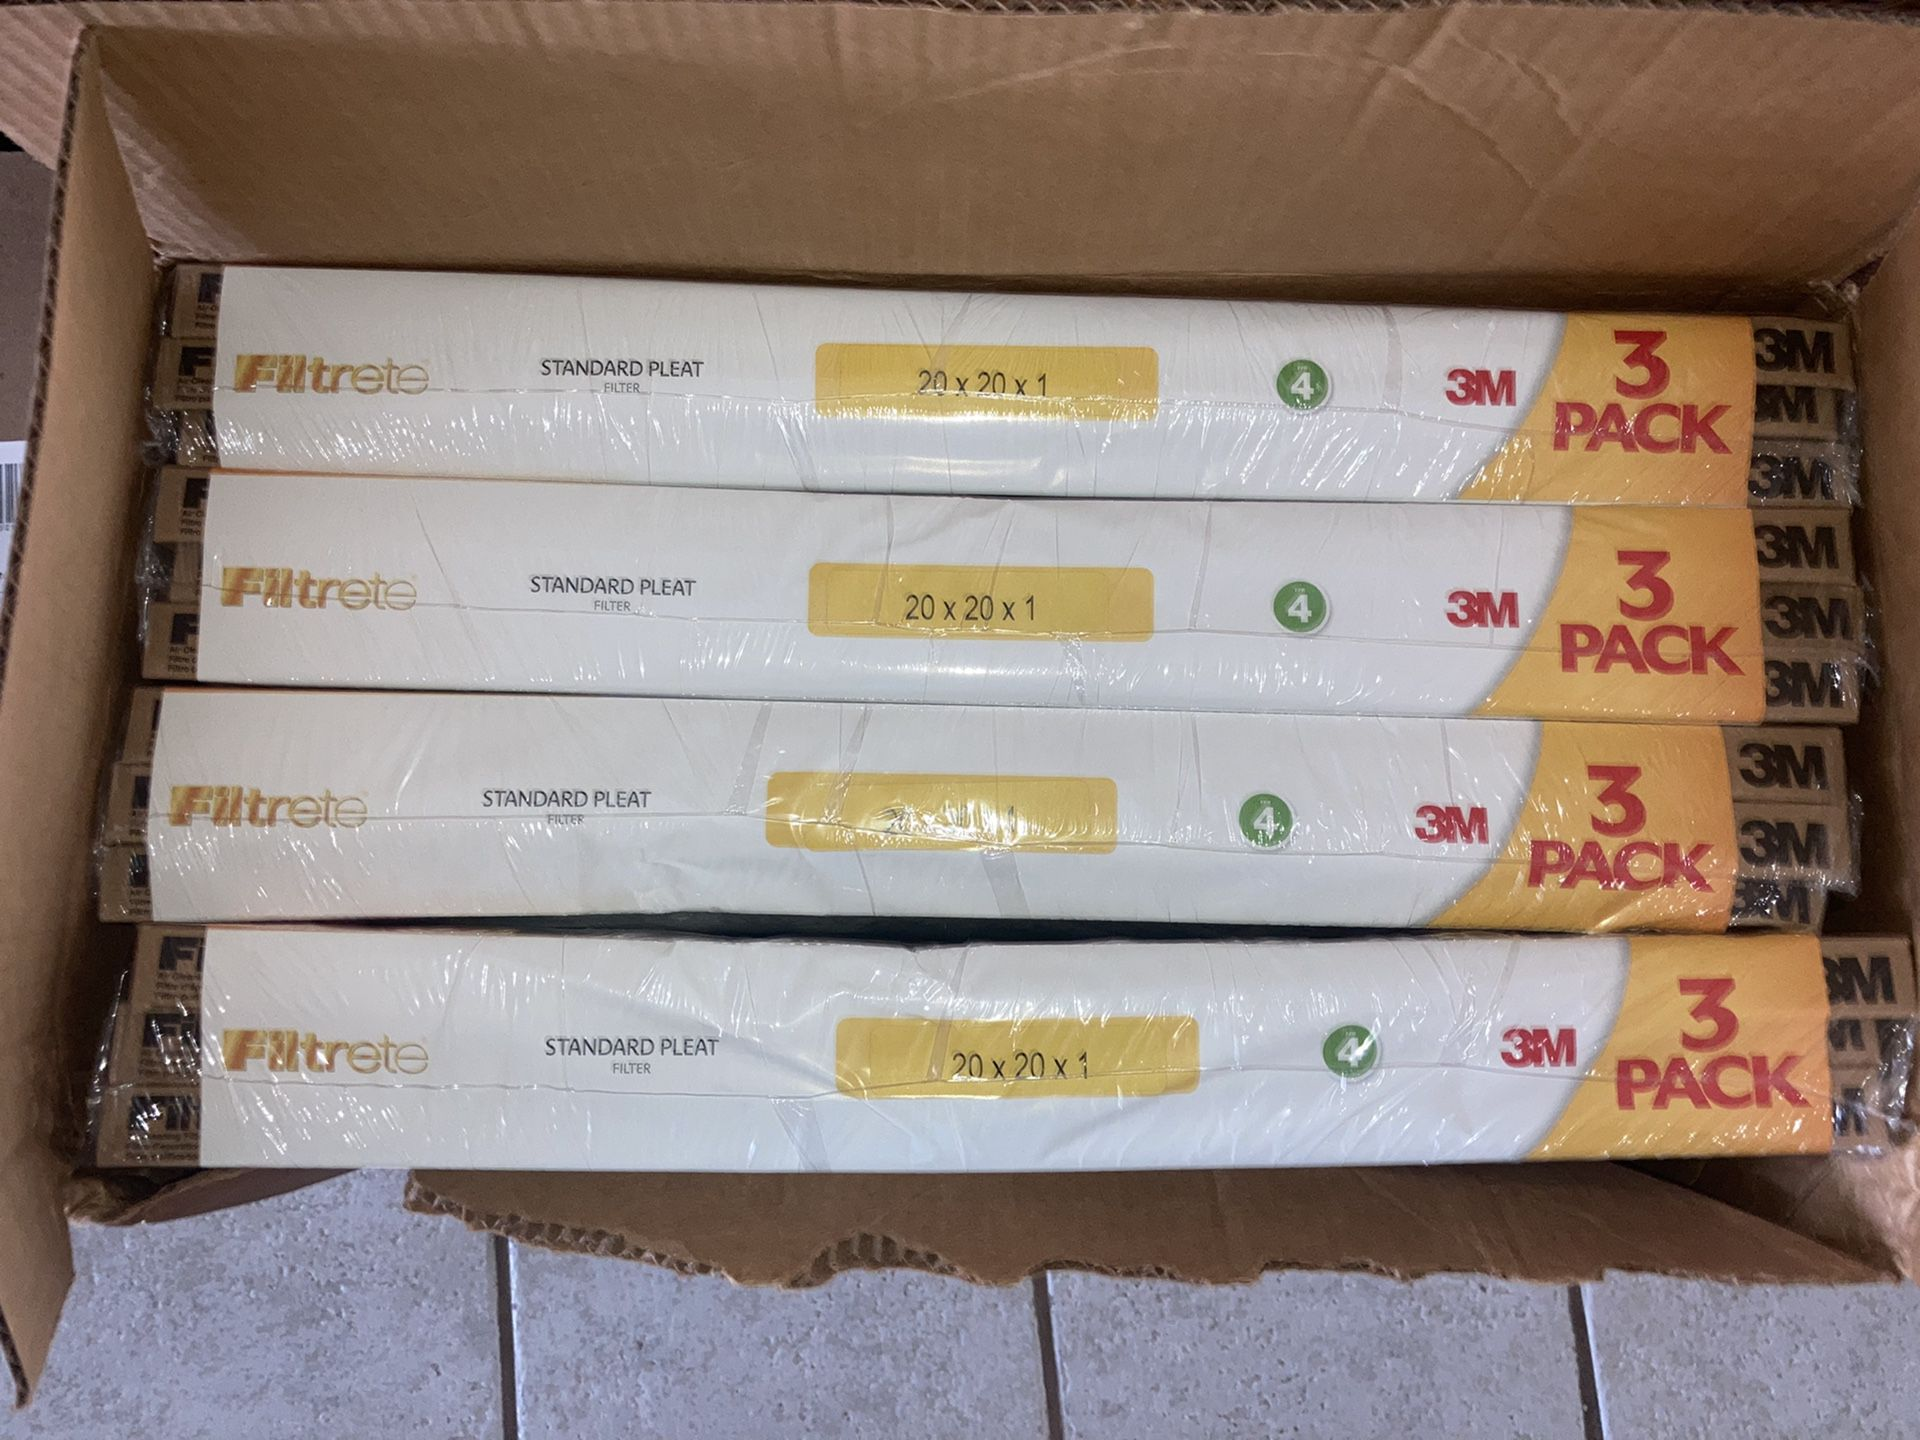 Brand New 3M Air Filters - 20x20 - 4 packs of 3